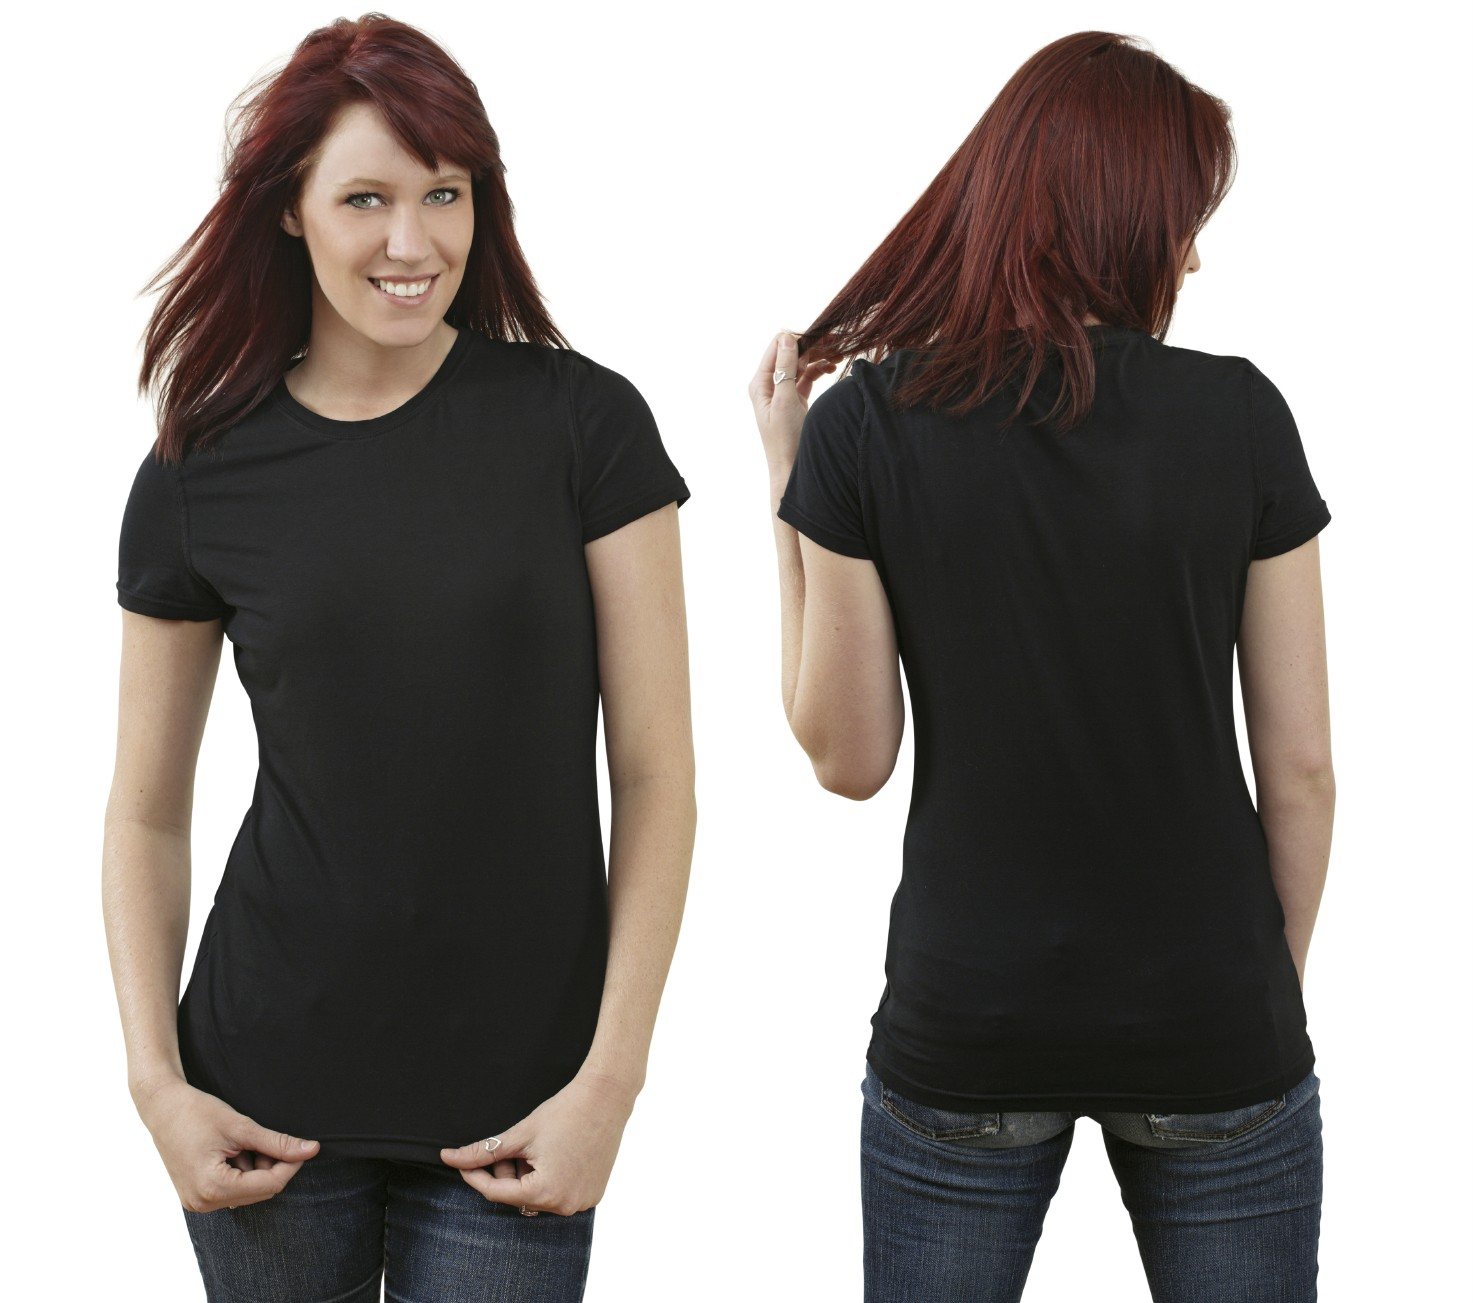 black t shirt model woman - photo #8